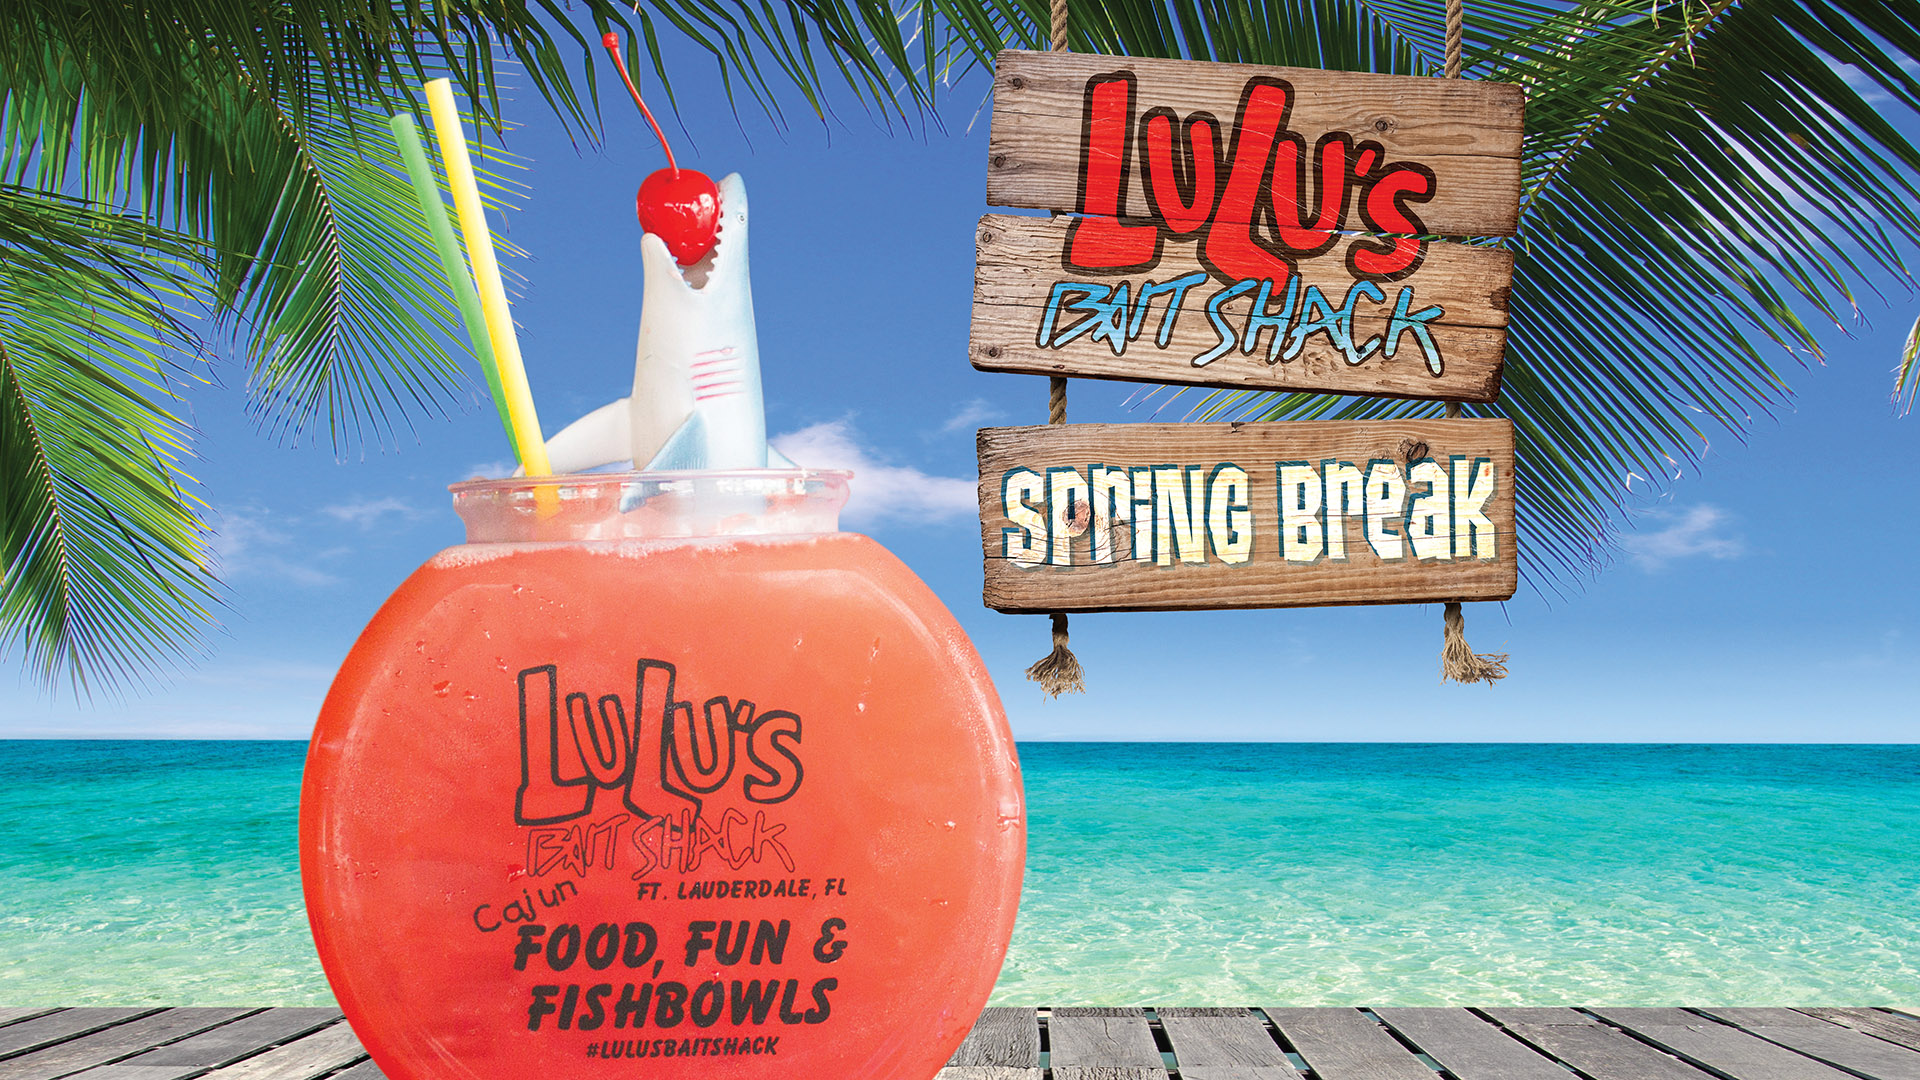 LuLu's-Spring Break 1920x1080.jpg